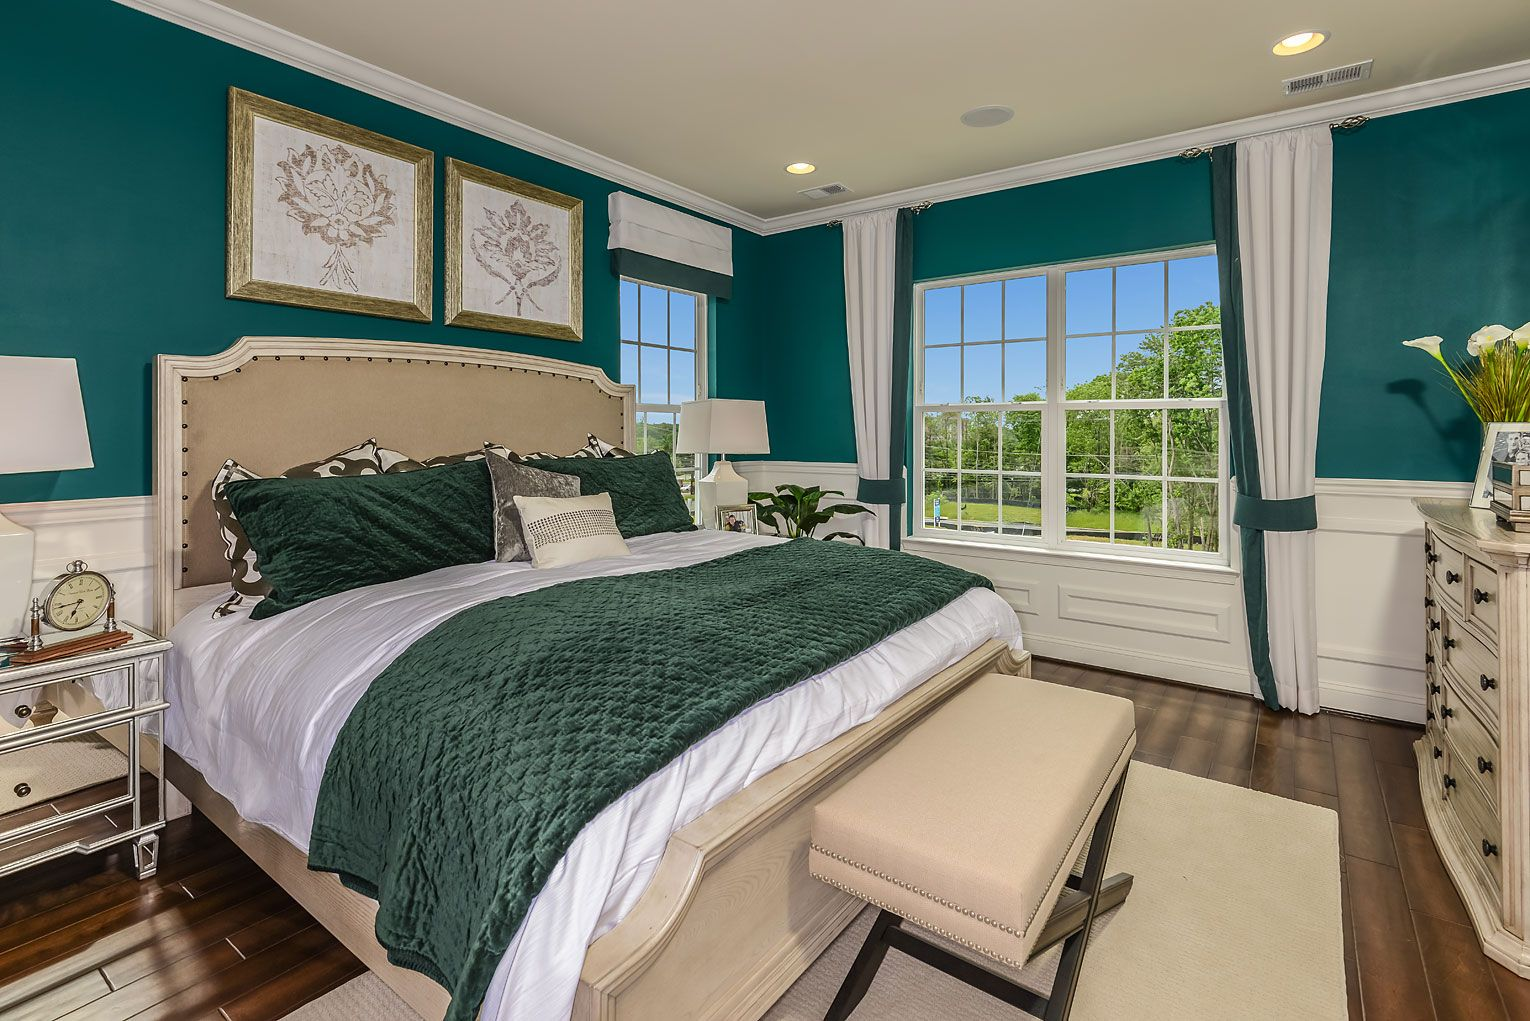 Arcadia at Norbeck Crossing | Ryland Homes - Northern Virginia & DC on small house bedroom design, brick wall bedroom design, nursing home bedroom design, living room bedroom design, townhouse bedroom design, hotel bedroom design, interior design, hunting lodge bedroom design, luxury bedroom design, custom bedroom design, condominium bedroom design, mobile home bedroom design, office bedroom design,